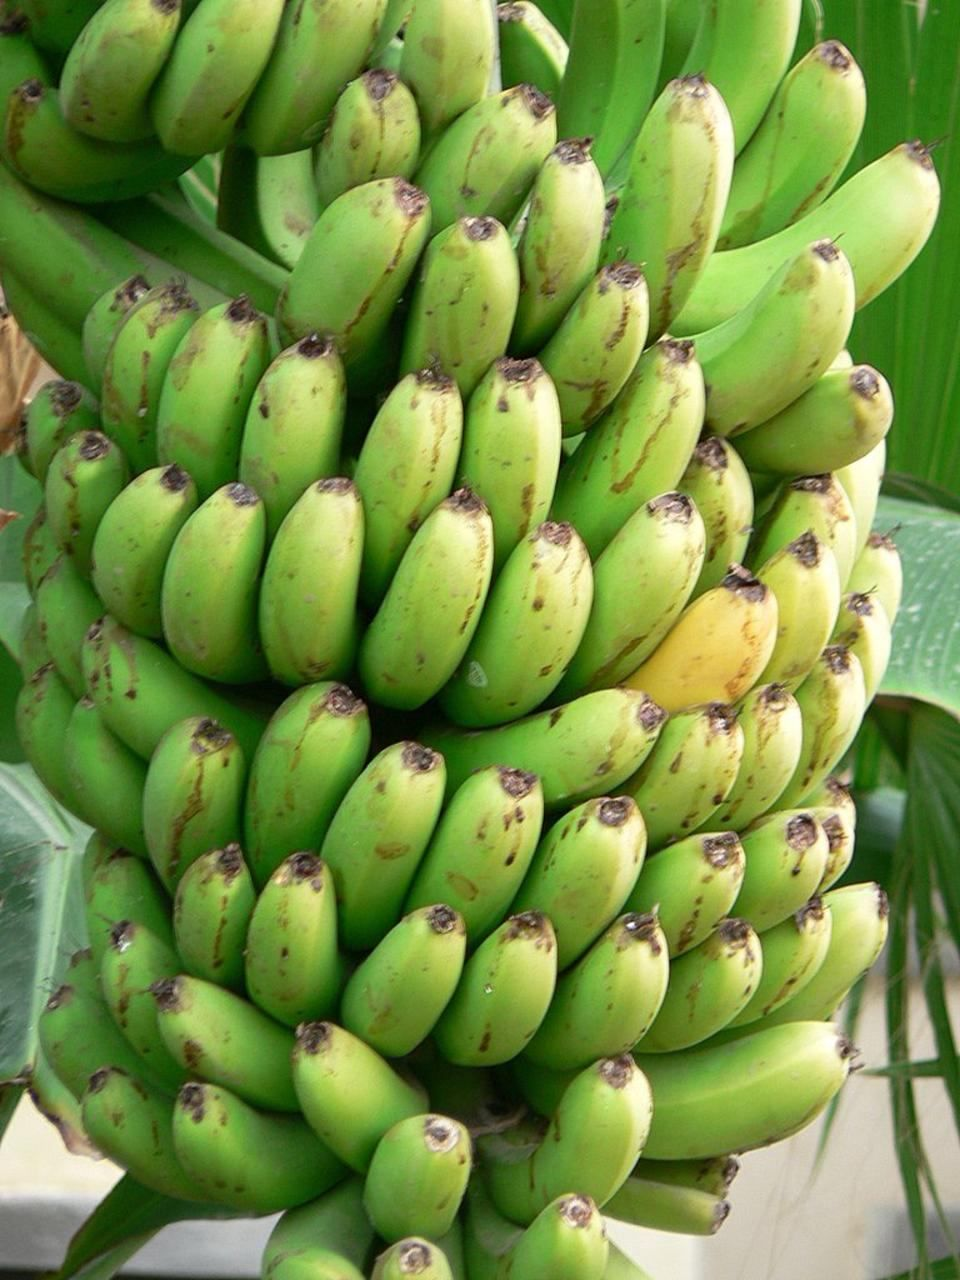 File:Green bananas.jpg